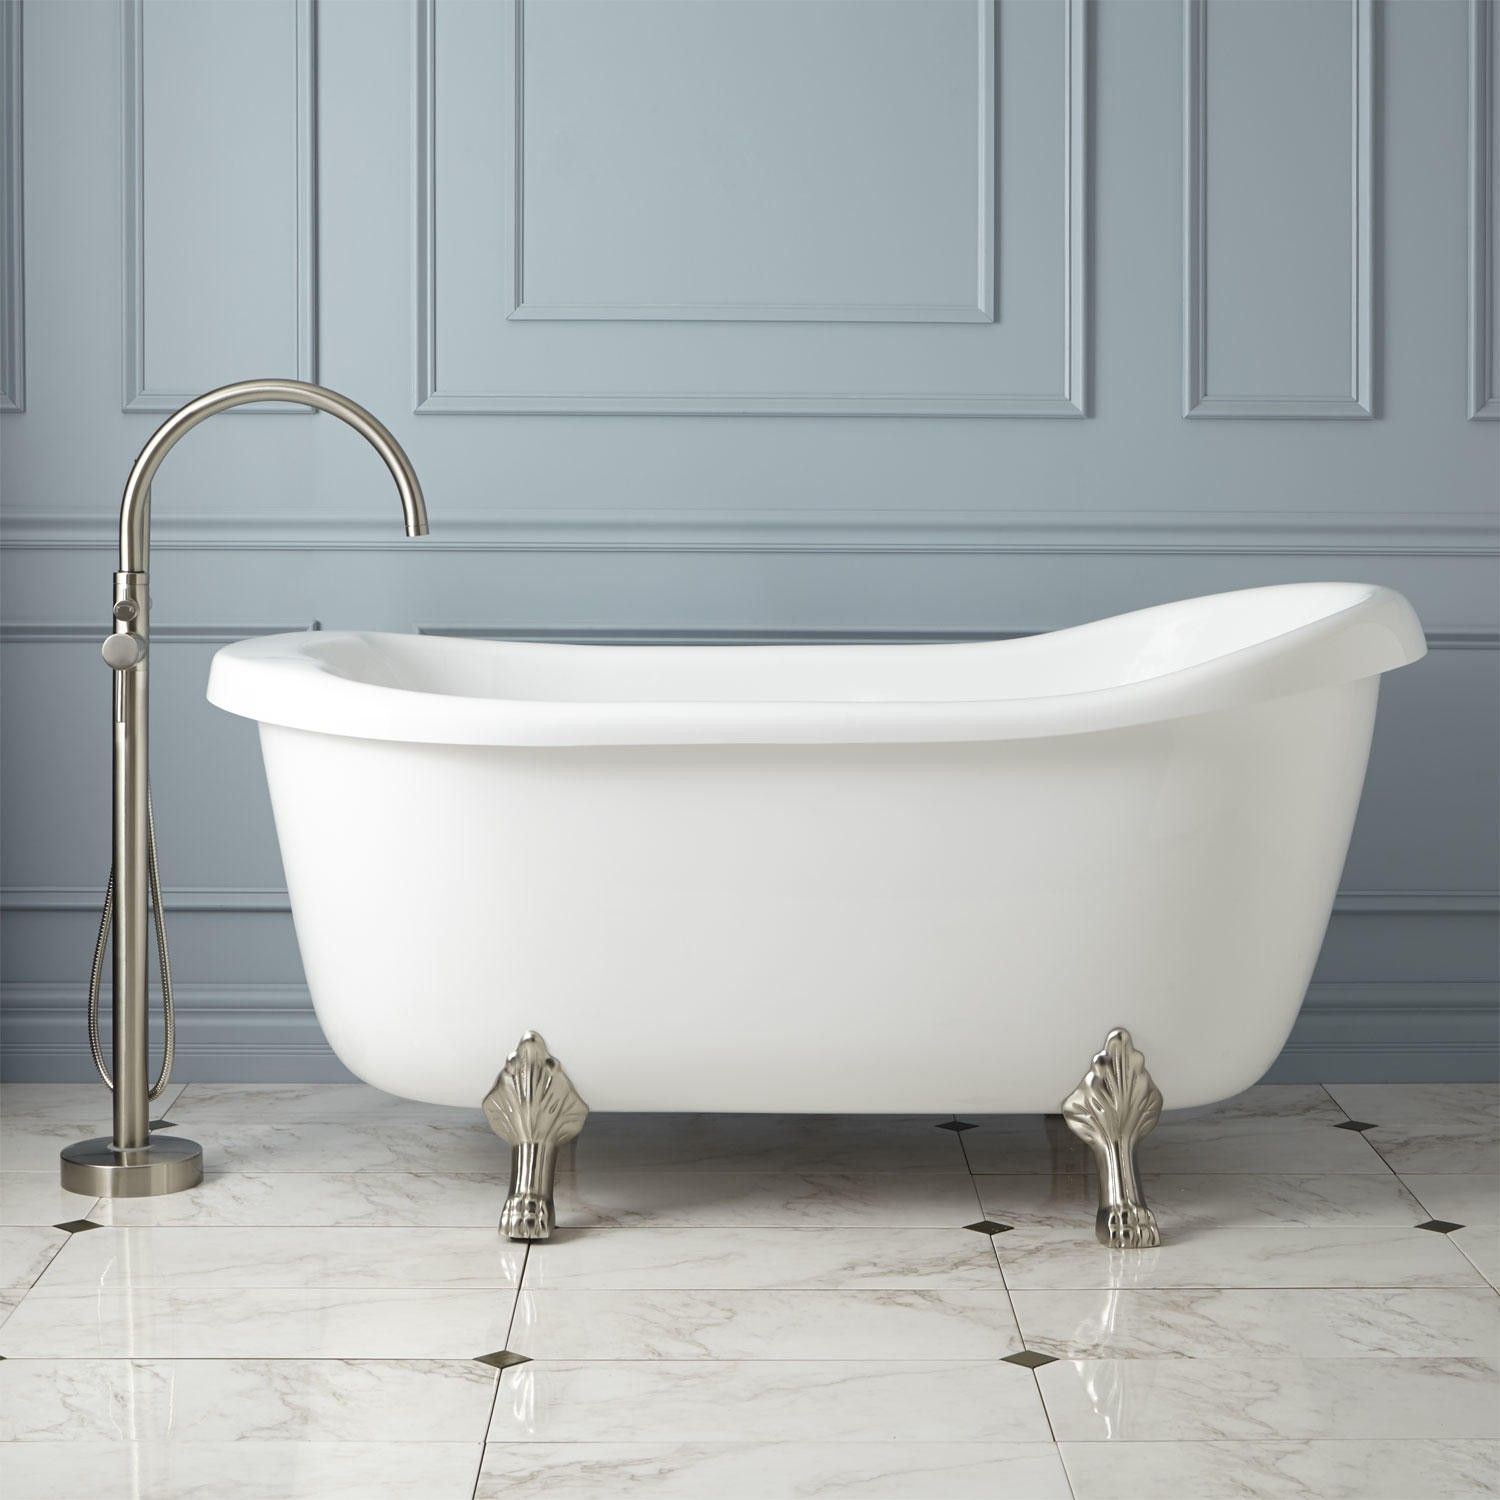 The Beauty Of A Claw Foot Tub And The Function Of A Whirlpool